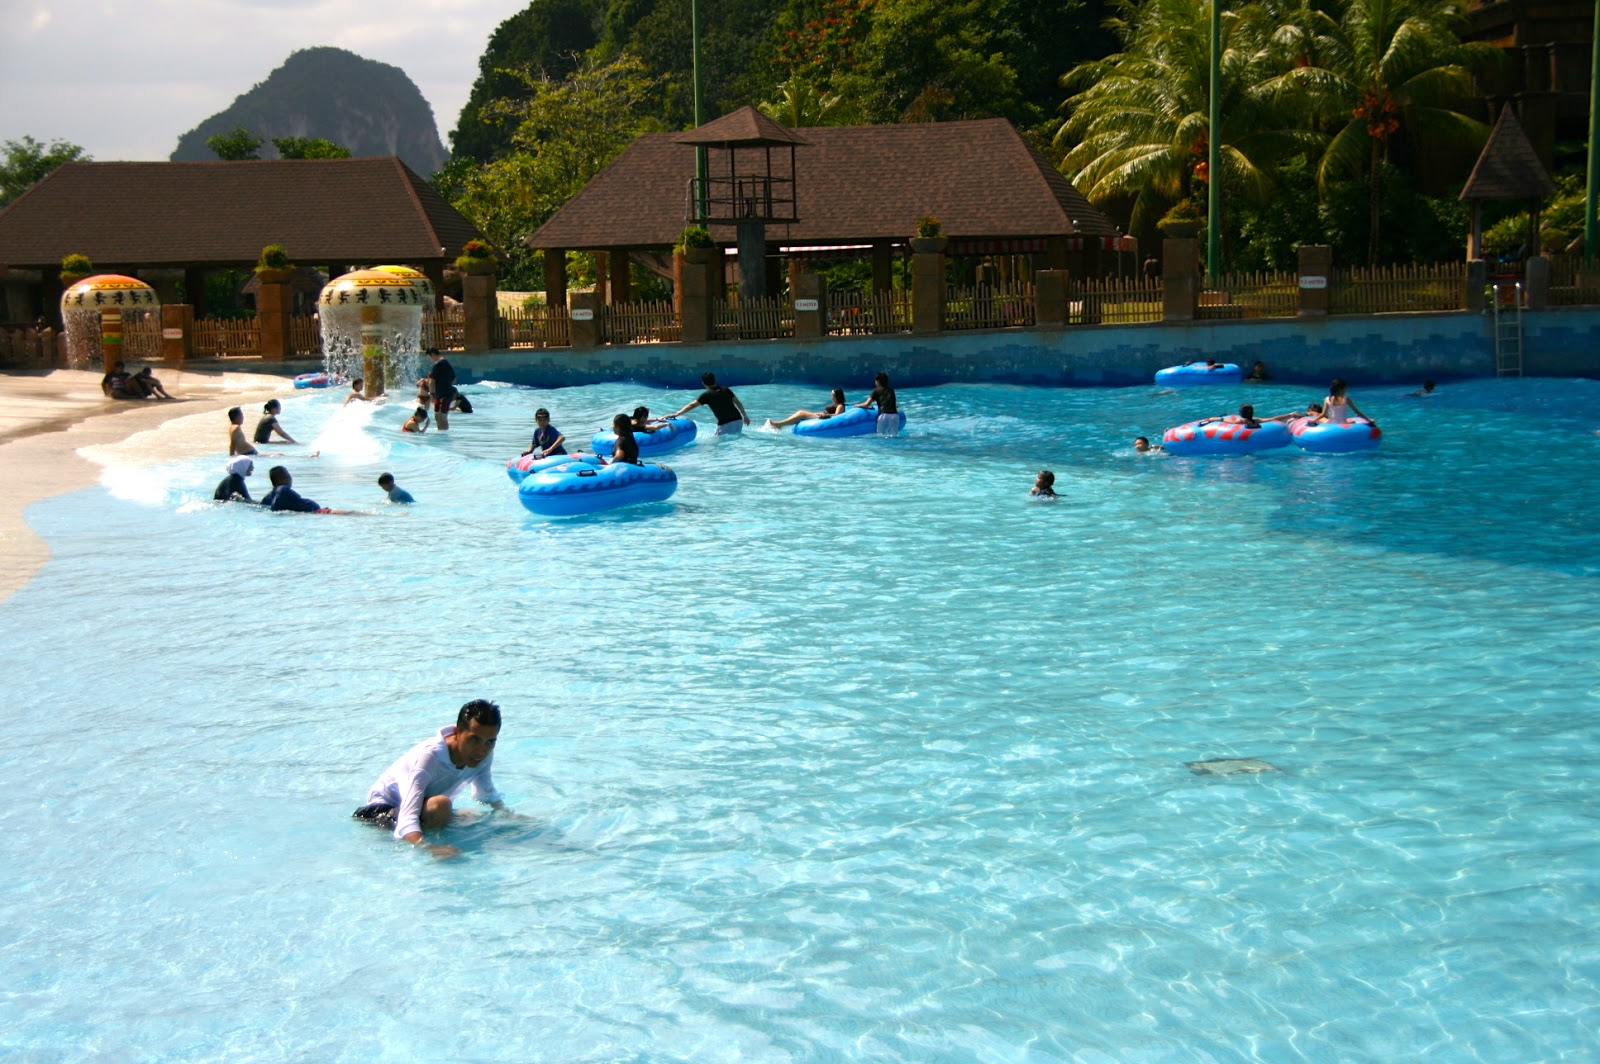 5 around the world family travels the world with kids lost world 5 around the world family travels the world with kids lost world of tambun theme park is more than just a water park gumiabroncs Choice Image